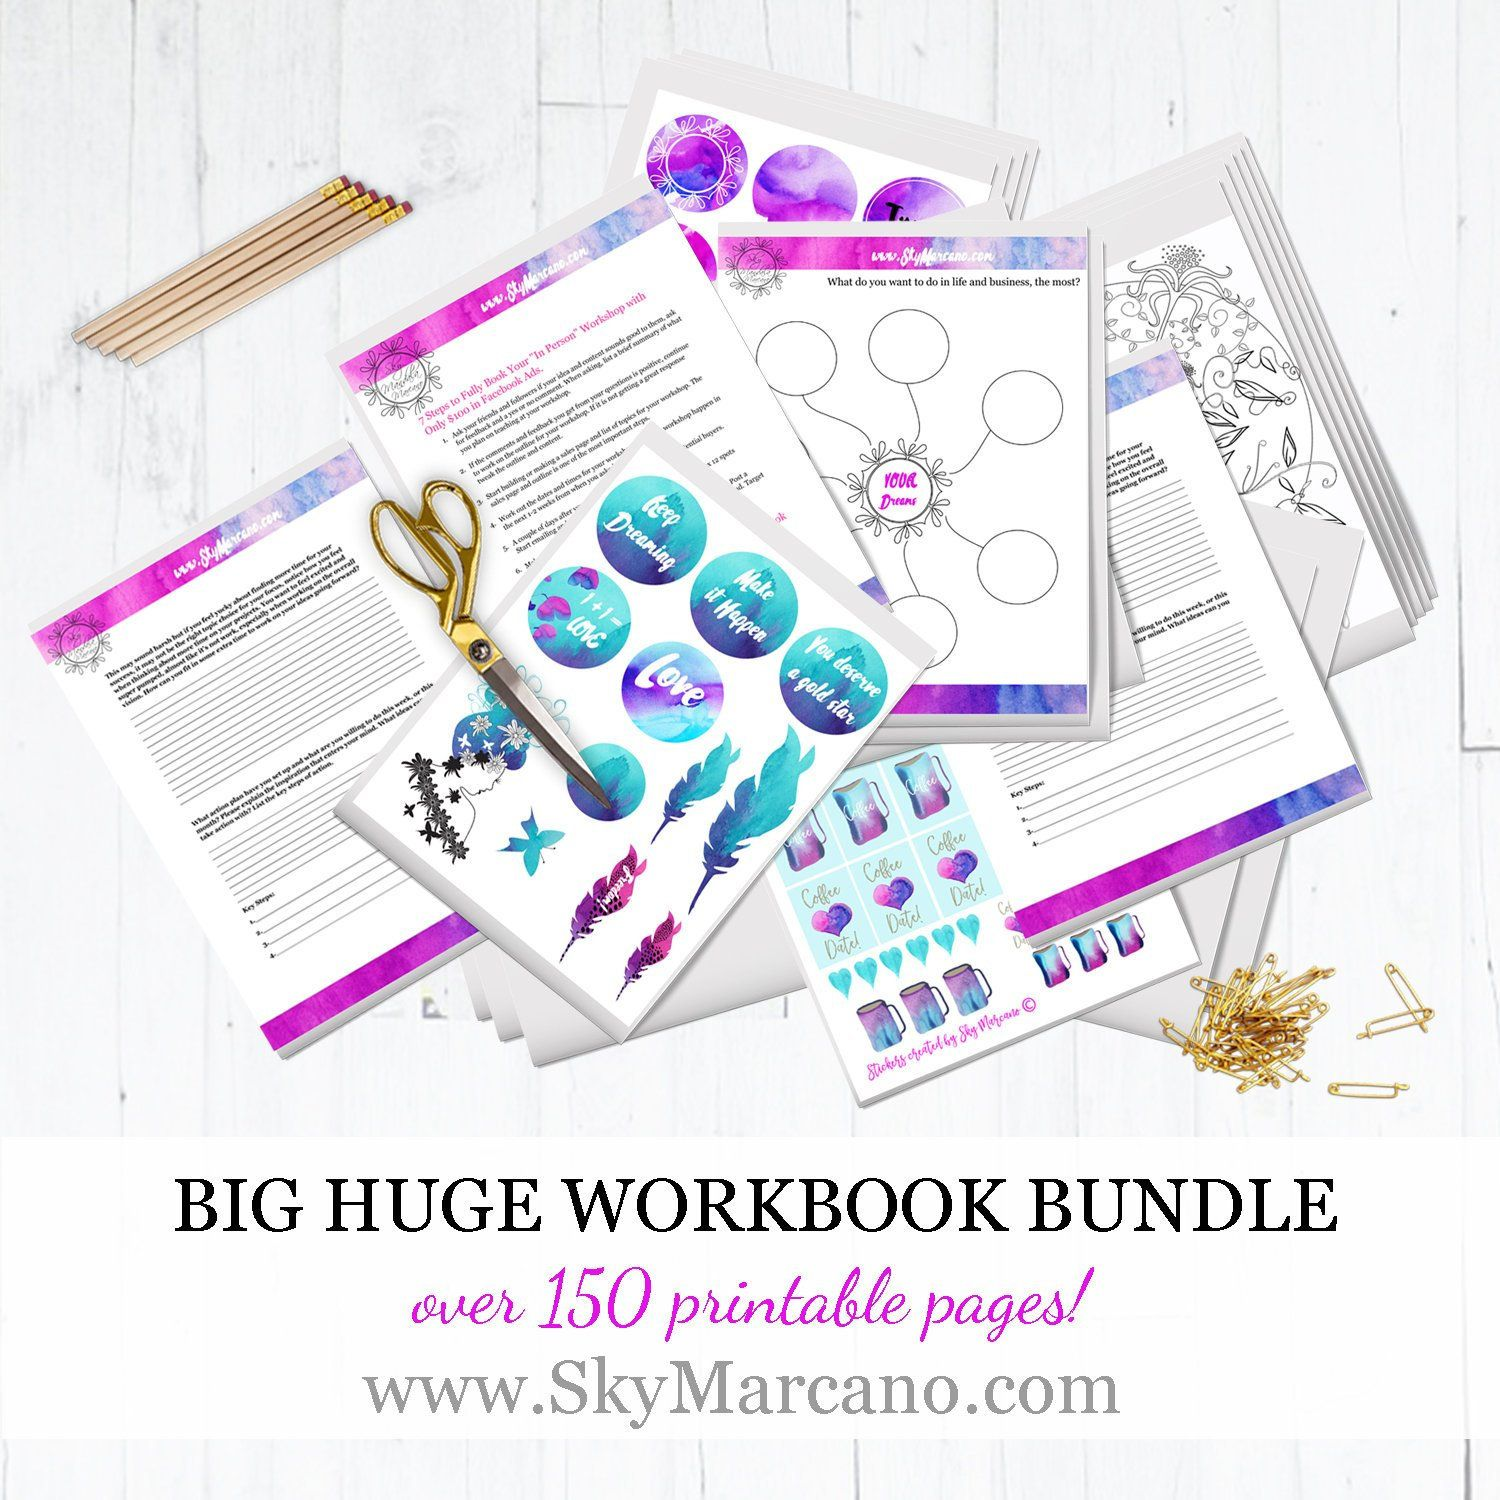 Planner Goal Planner Planner Stickers Business Planner